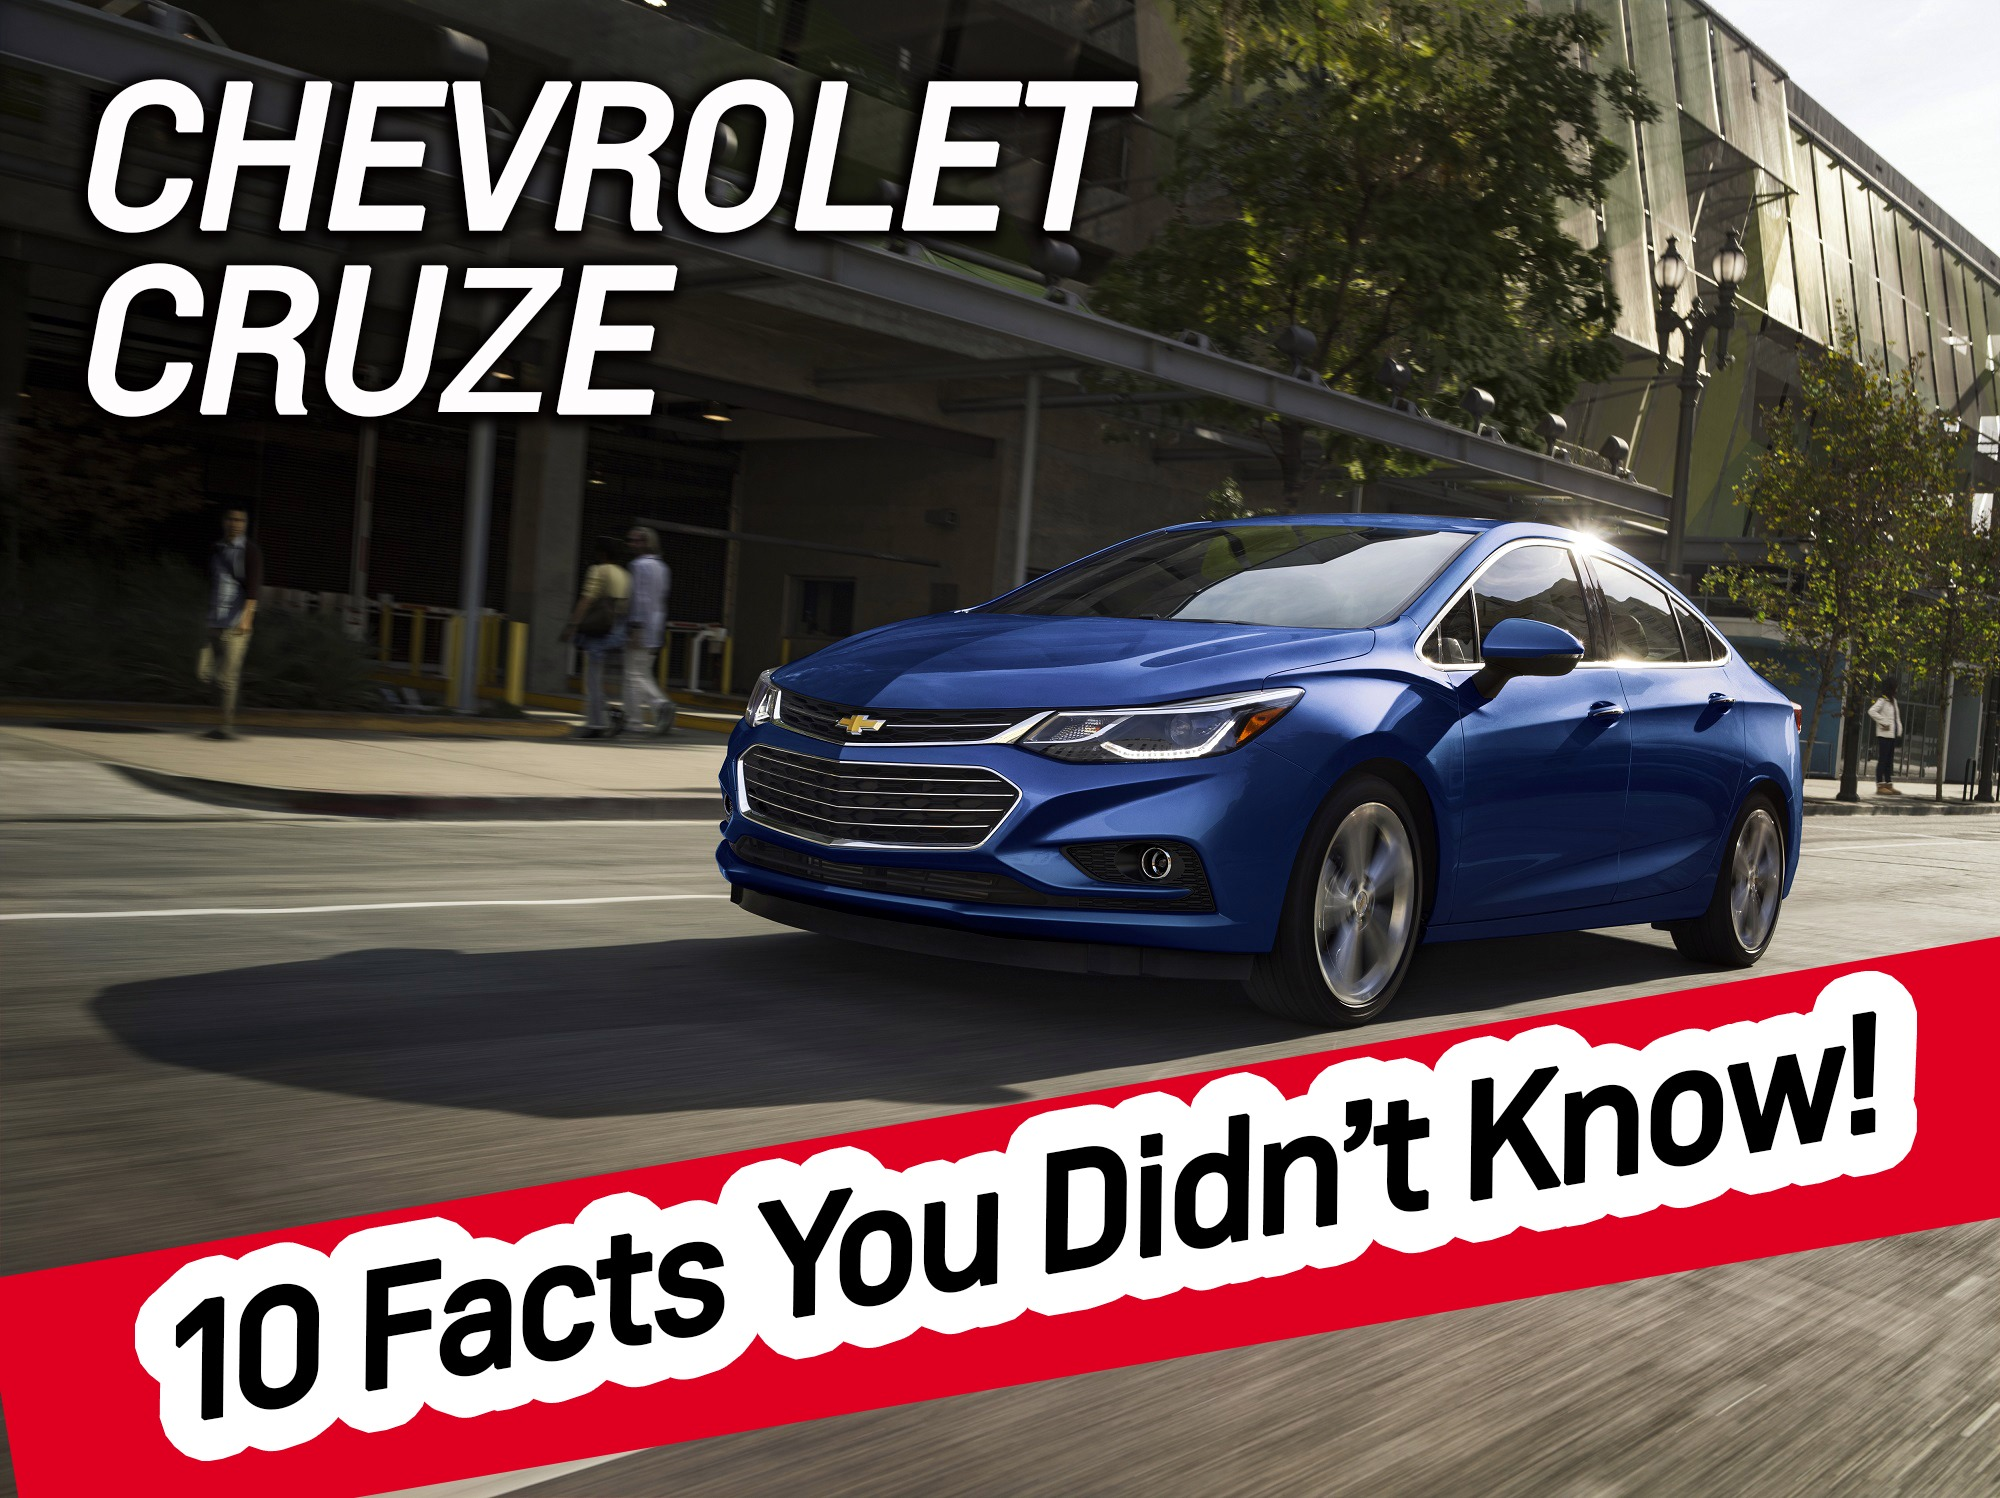 2017 Chevrolet Cruze - 10 Facts You Didn't Know! - Wallace